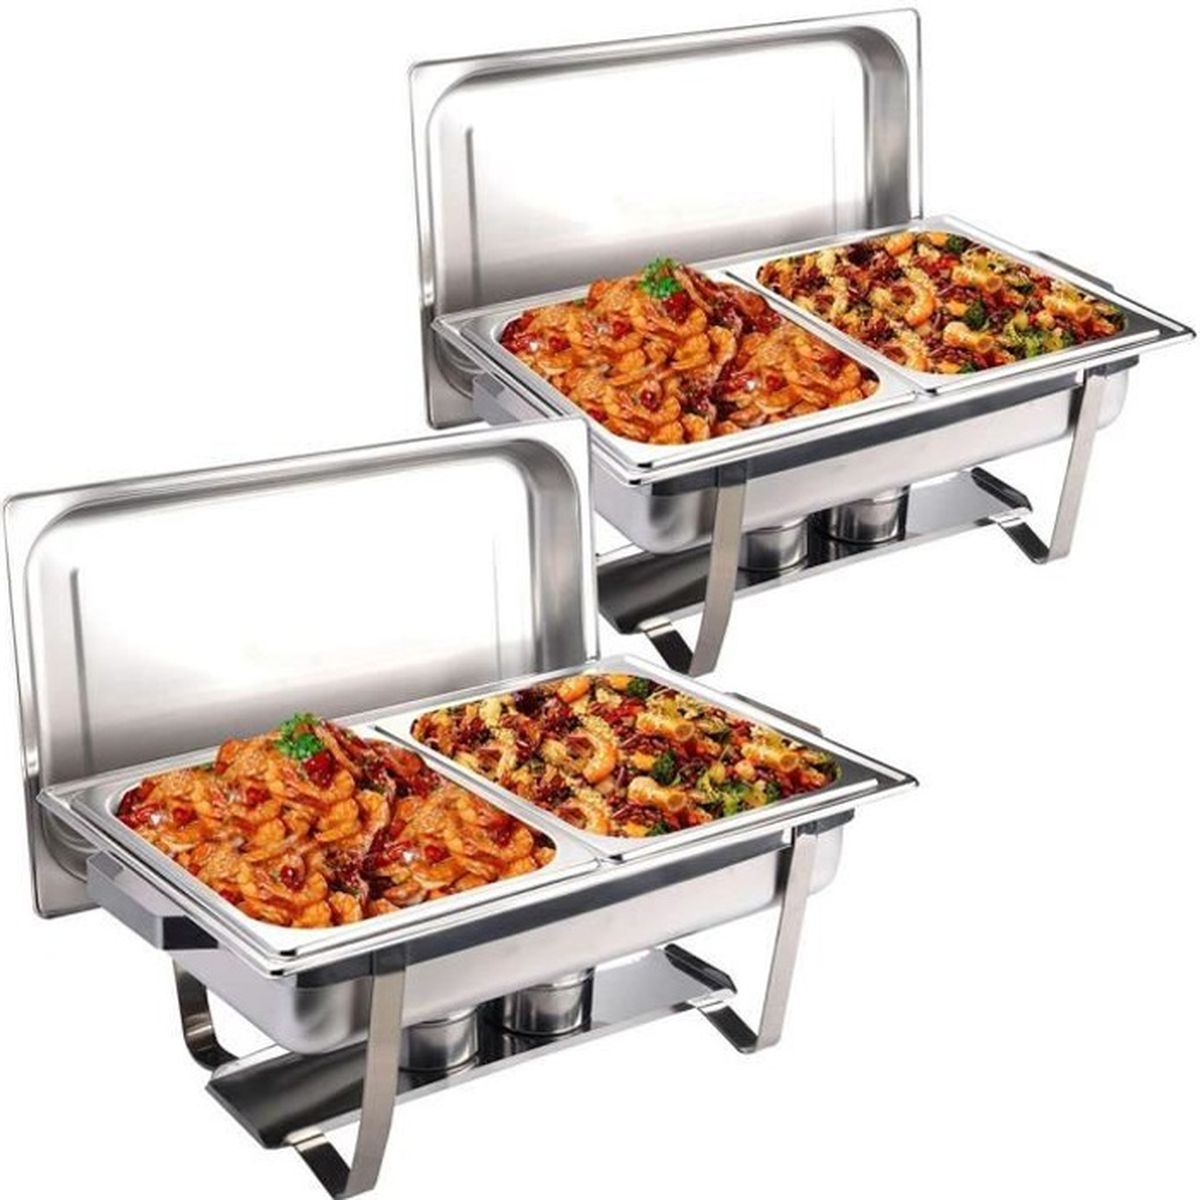 Set 2 x chafing dish professionnel r chaud dish inox repas for Table cuisine inox professionnelle